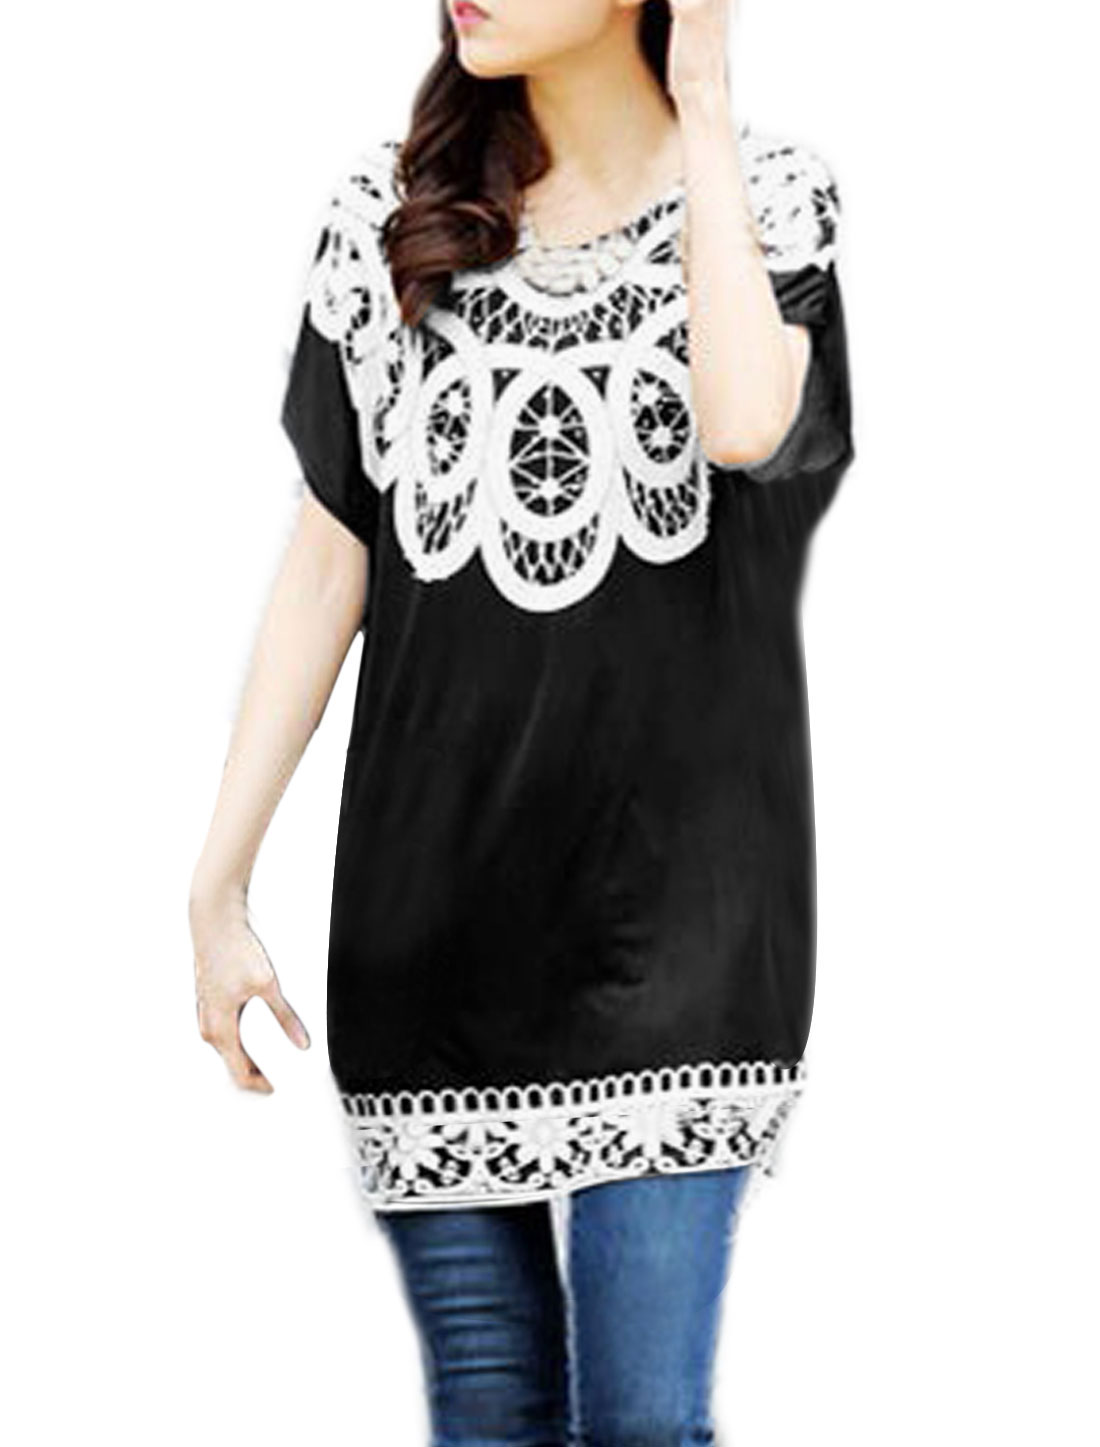 Ladies Leisure Novelty Prints Batwing Design Tunic Blouse Black S